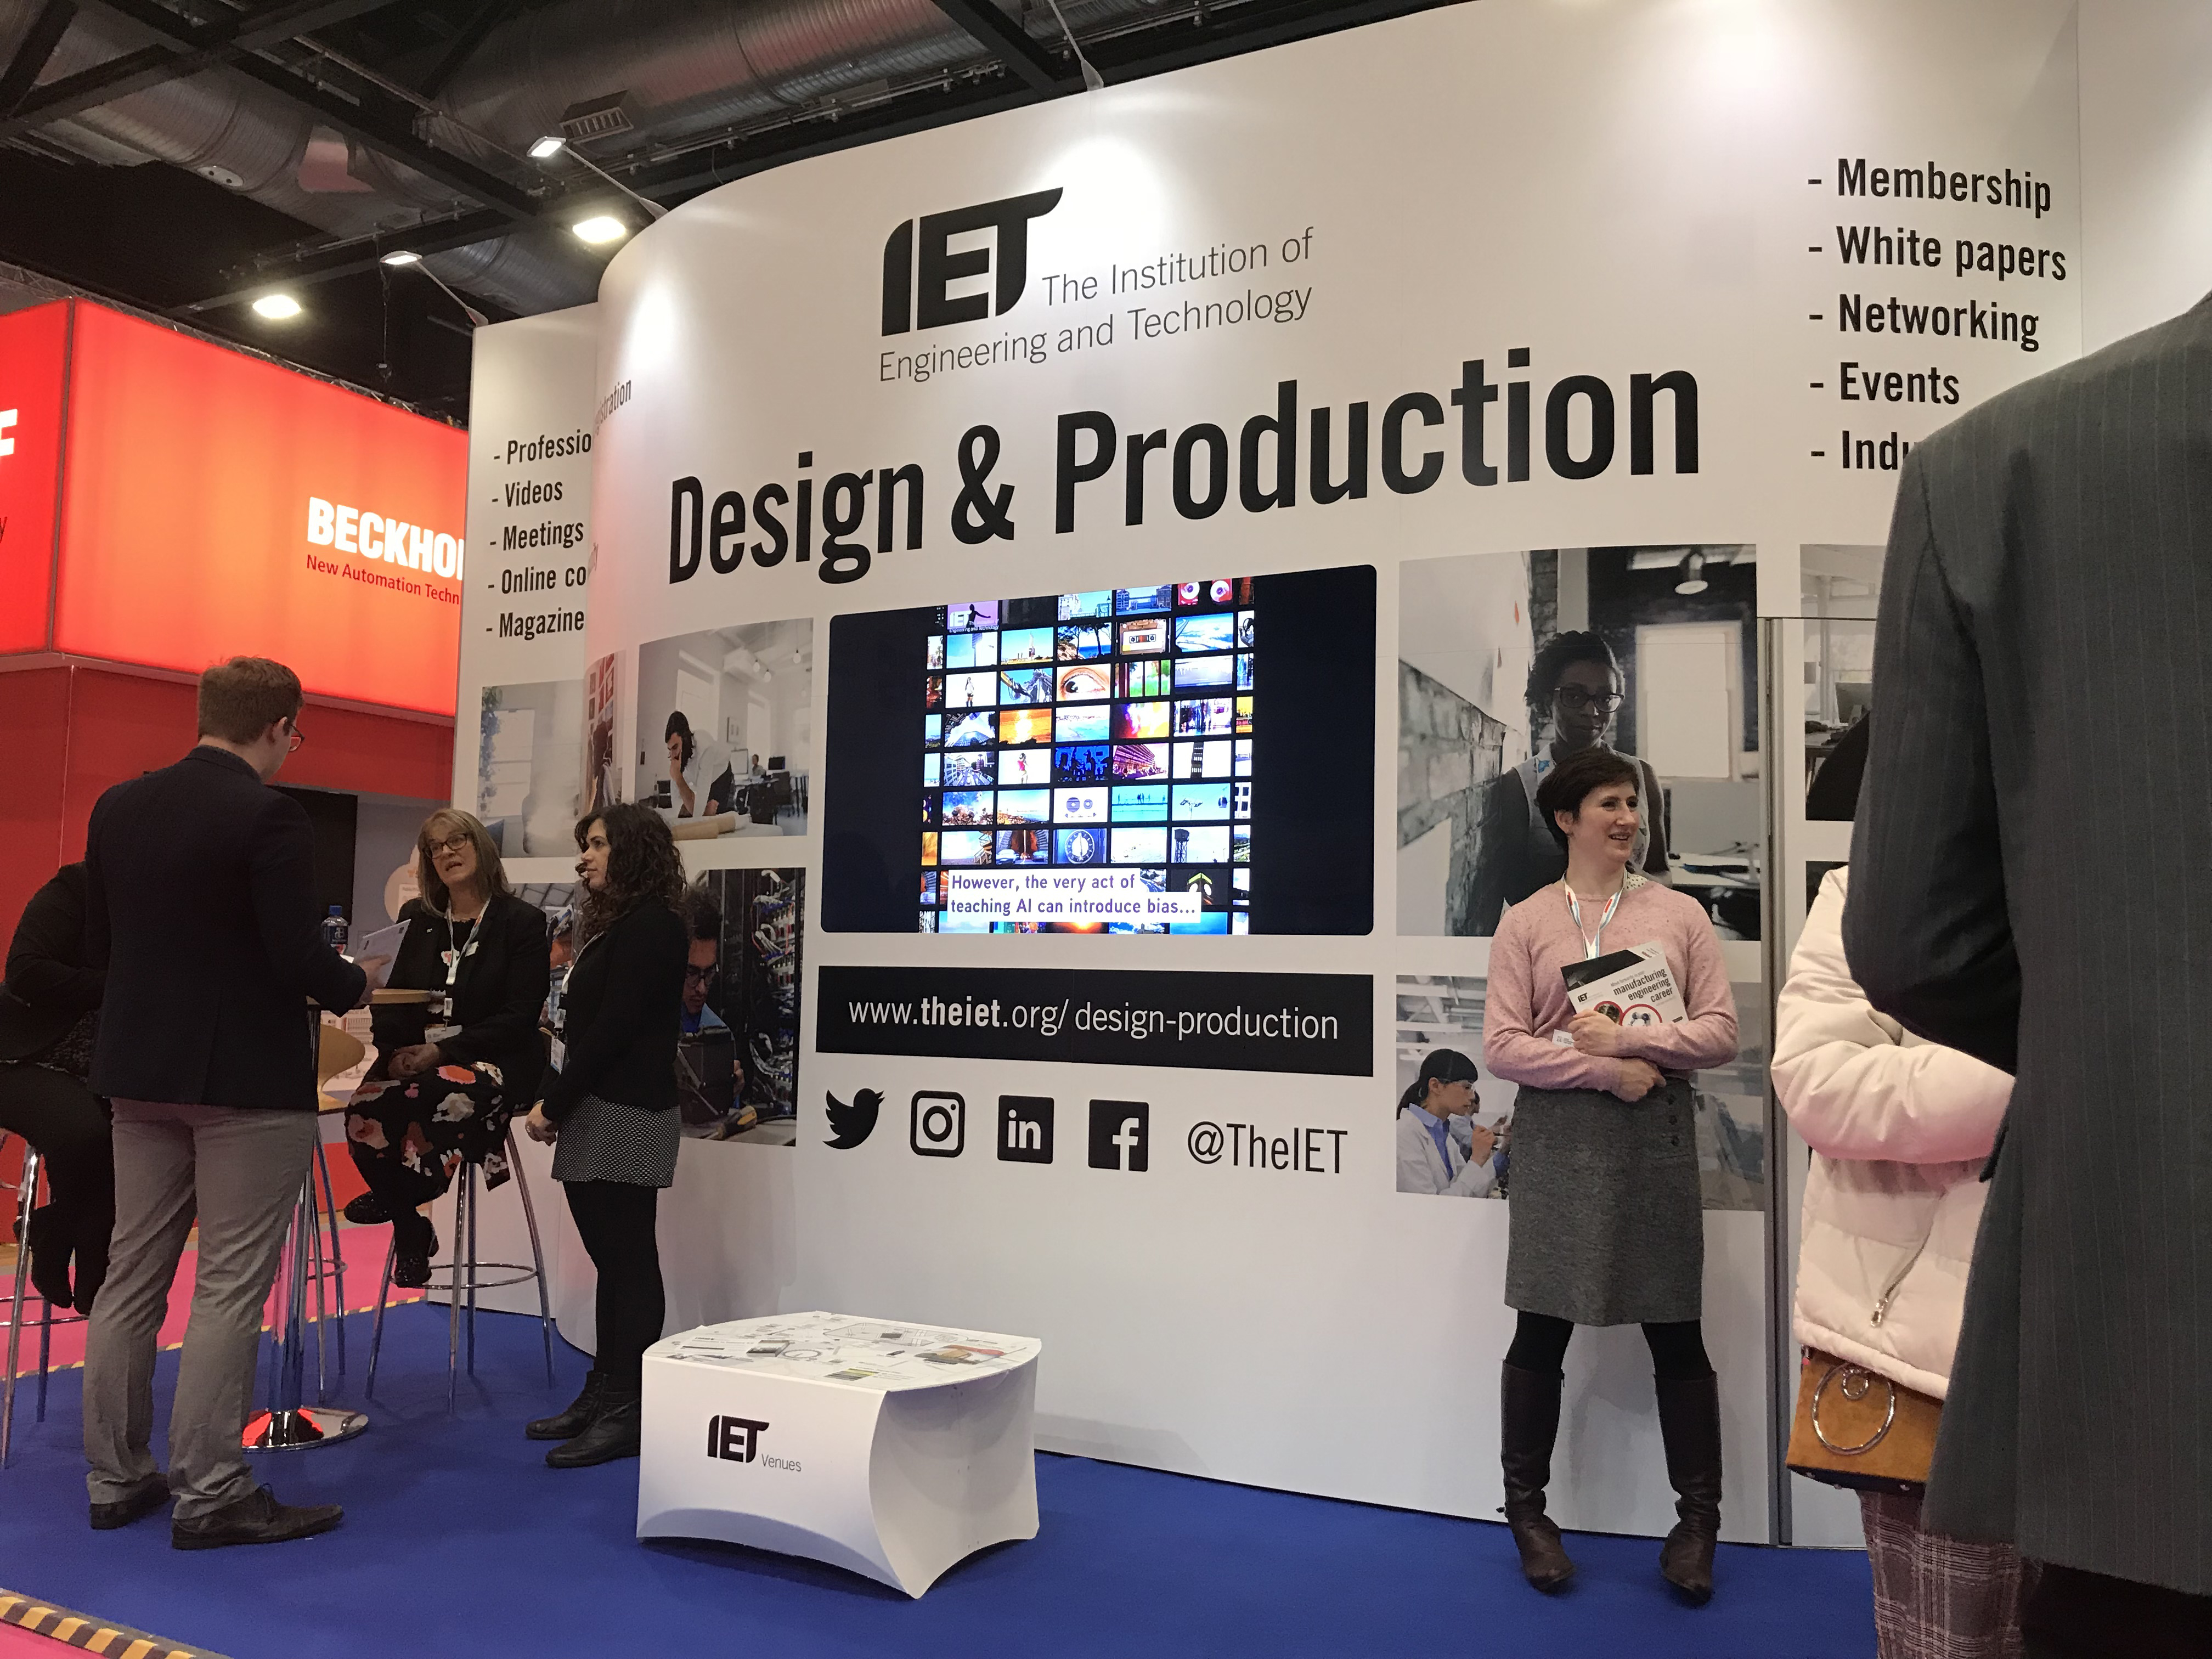 IET stand at Digital Manufacturing Week 2018